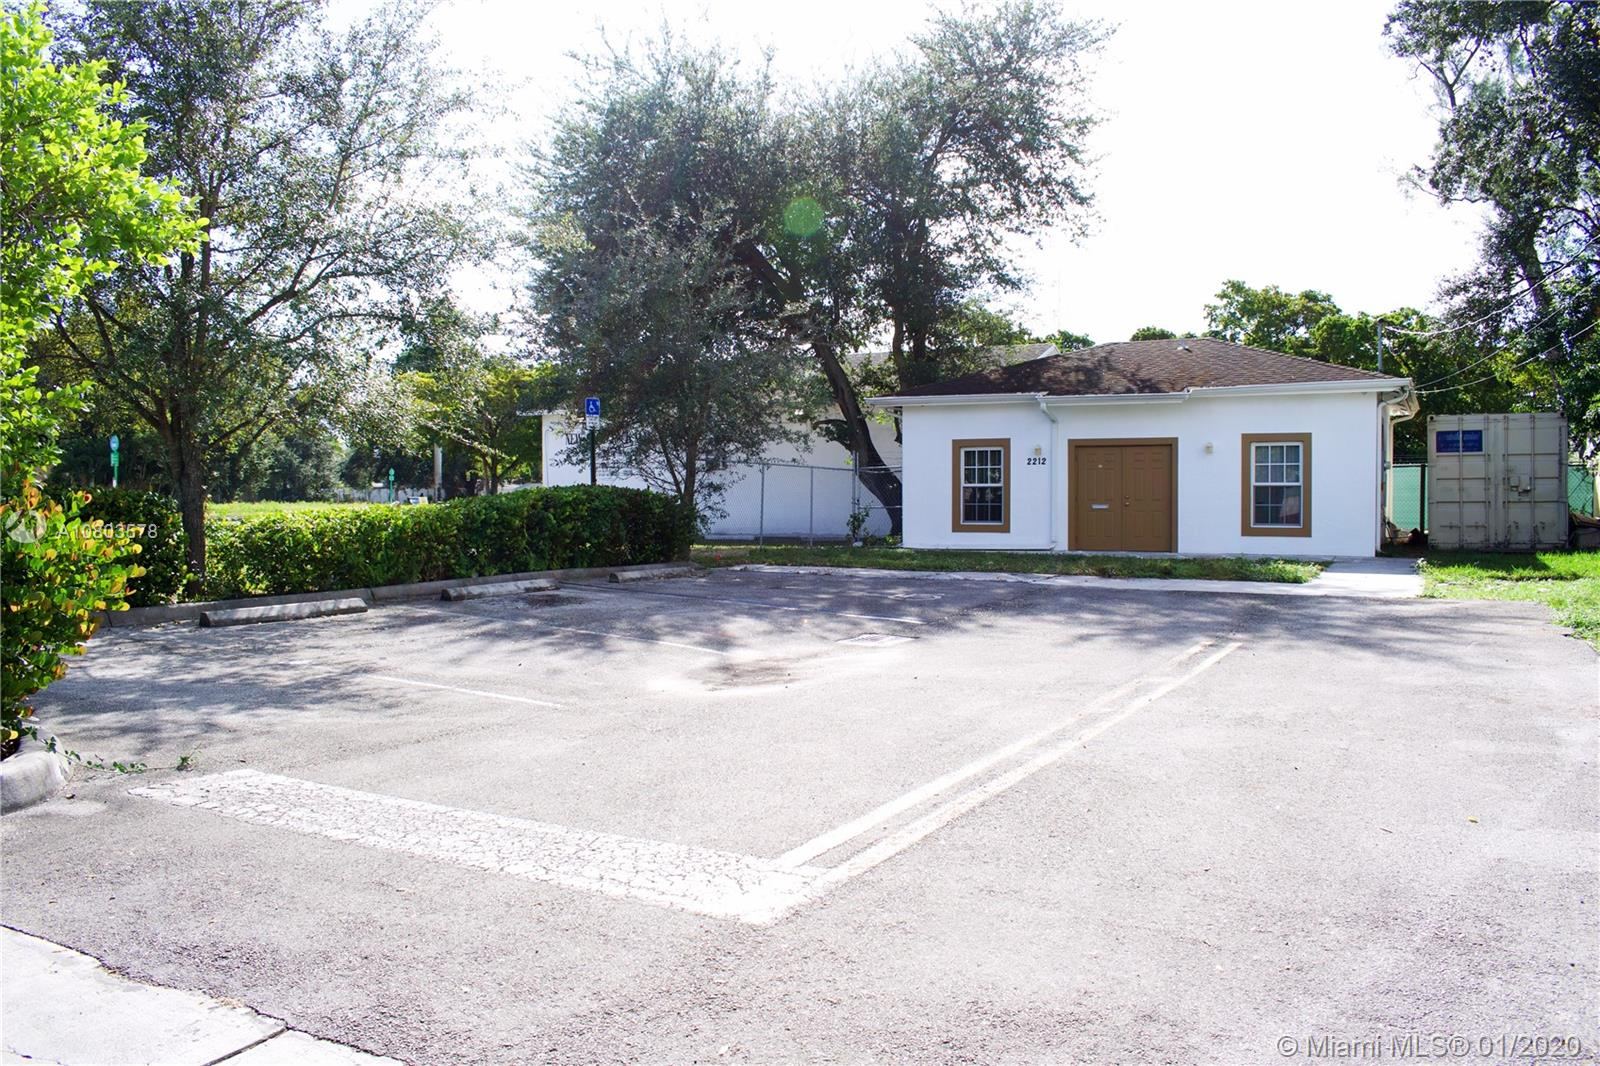 2212 NW 91st St, Miami, FL 33147 - Miami, FL real estate listing